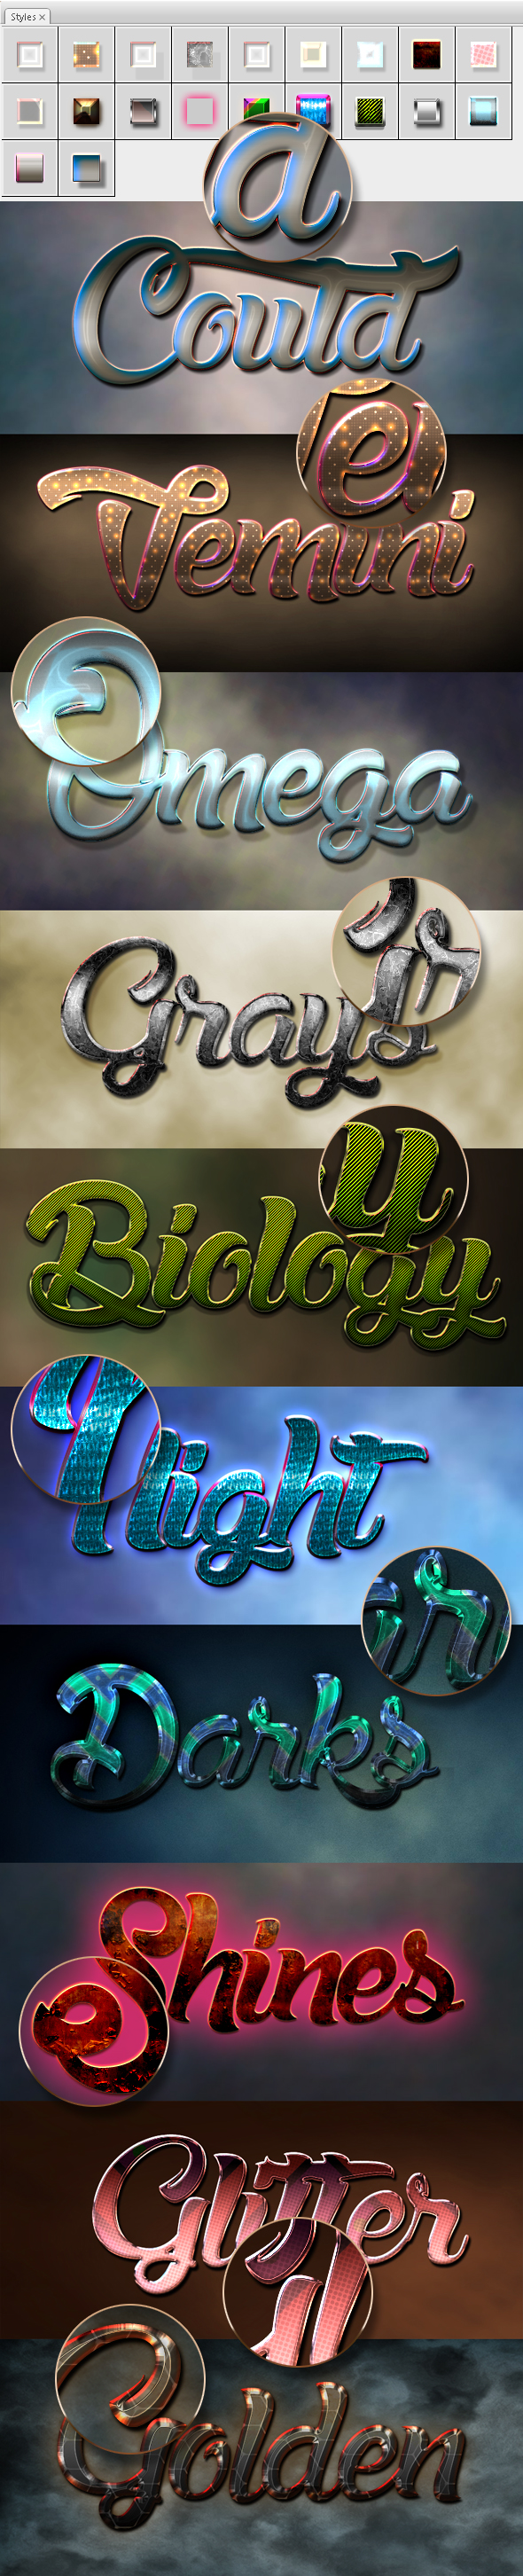 10 3D Text Styles D_58 - Styles Photoshop